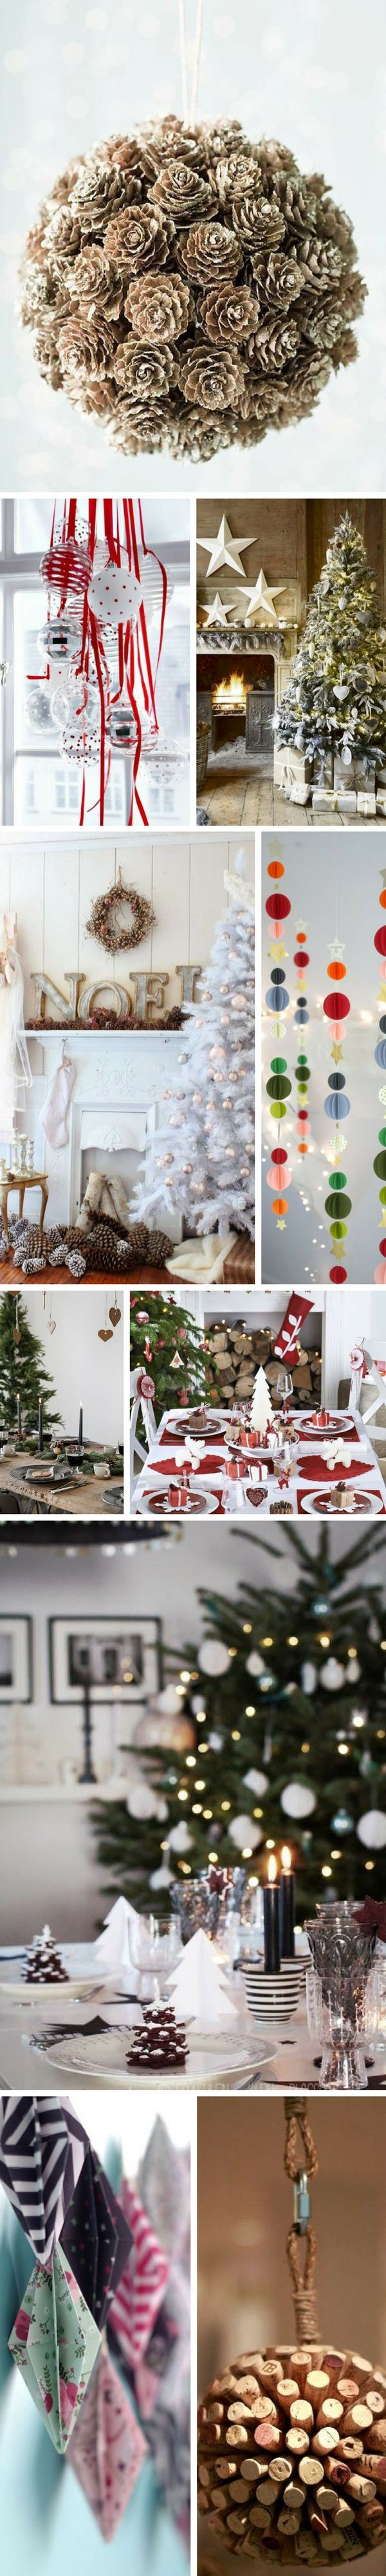 Decoration noel 2017 2018 - Decoration sapin de noel tendance ...